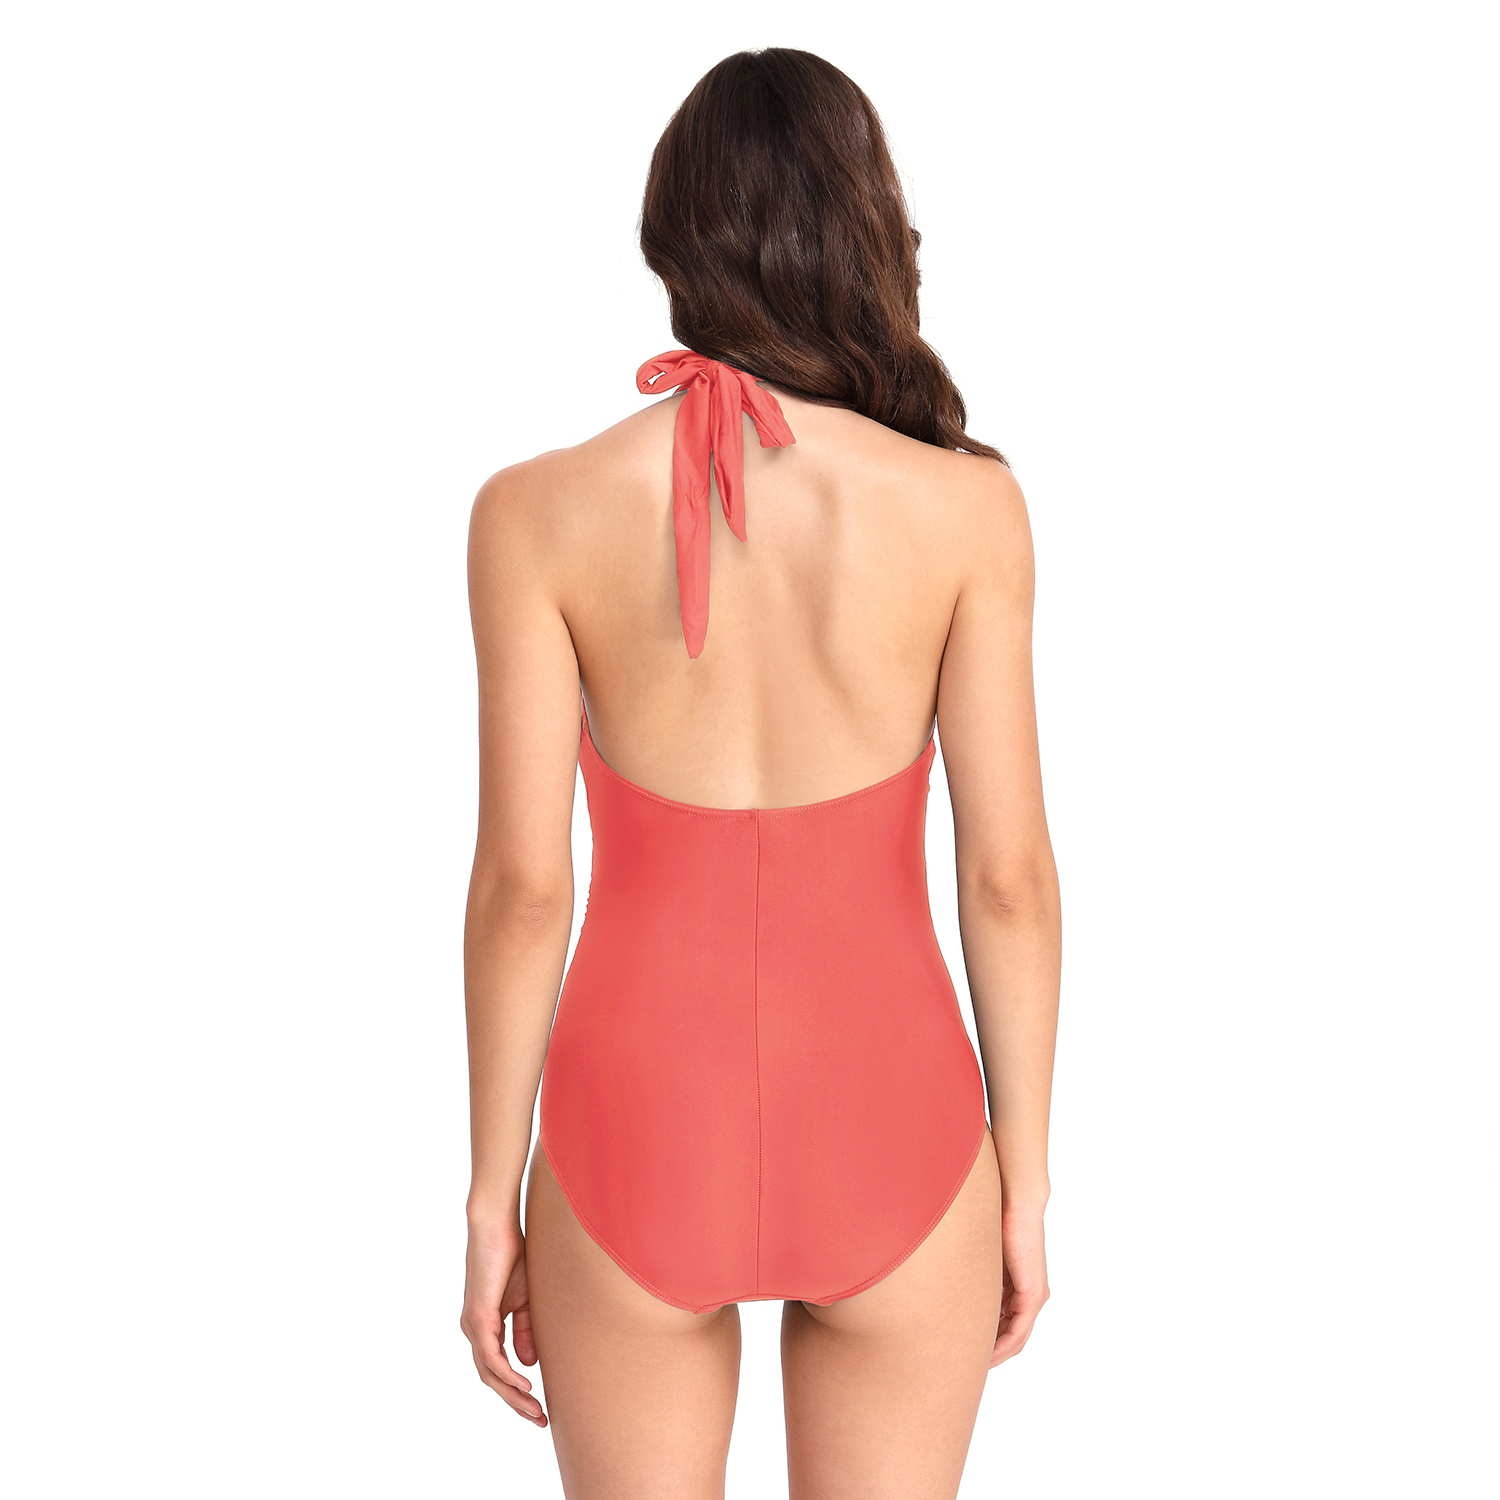 FC Sports Wear New Front Opening Bodysuit Women Open Back One Piece Backless Tether Bathing Suit Beach Living Coral 2019